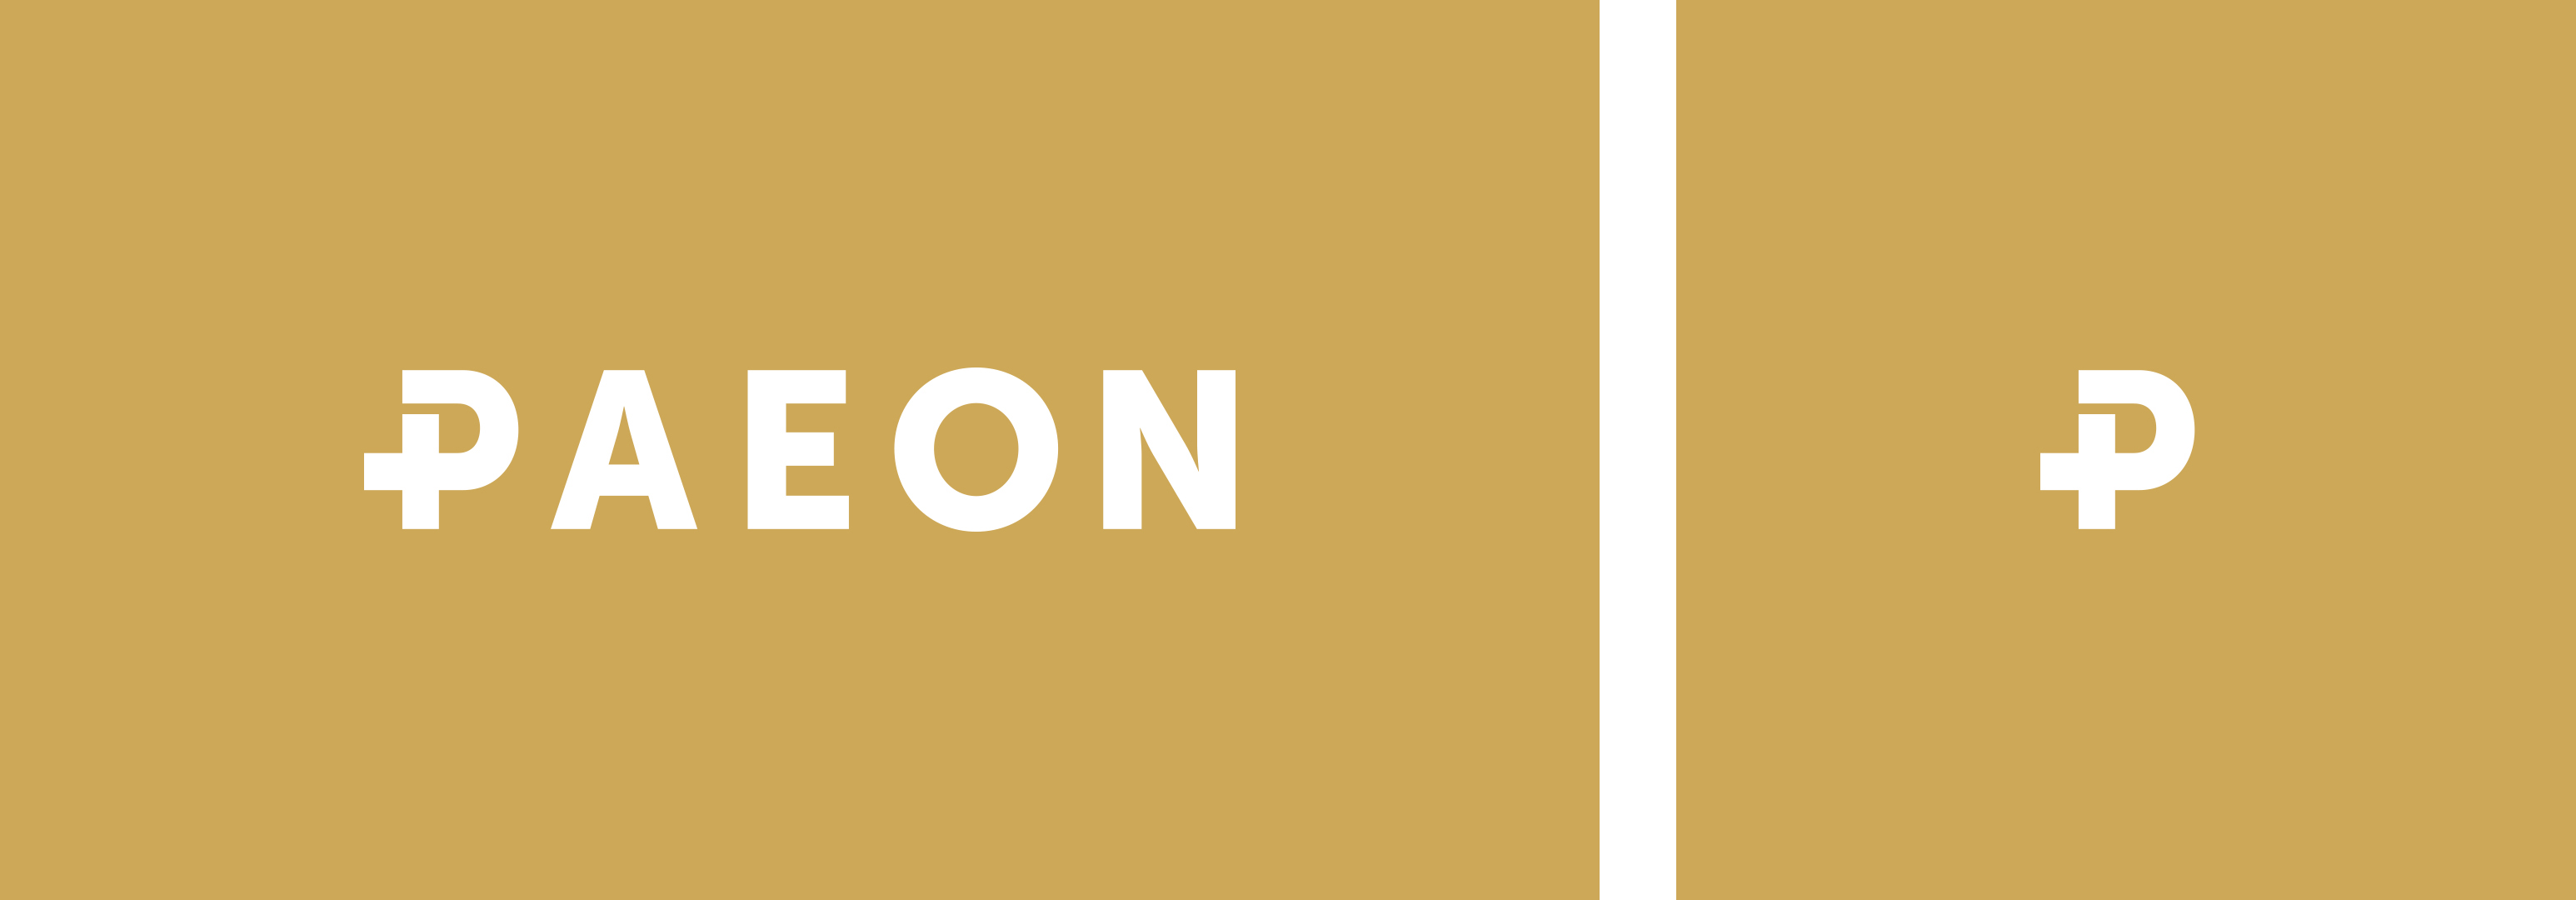 paeon_logo_favicon